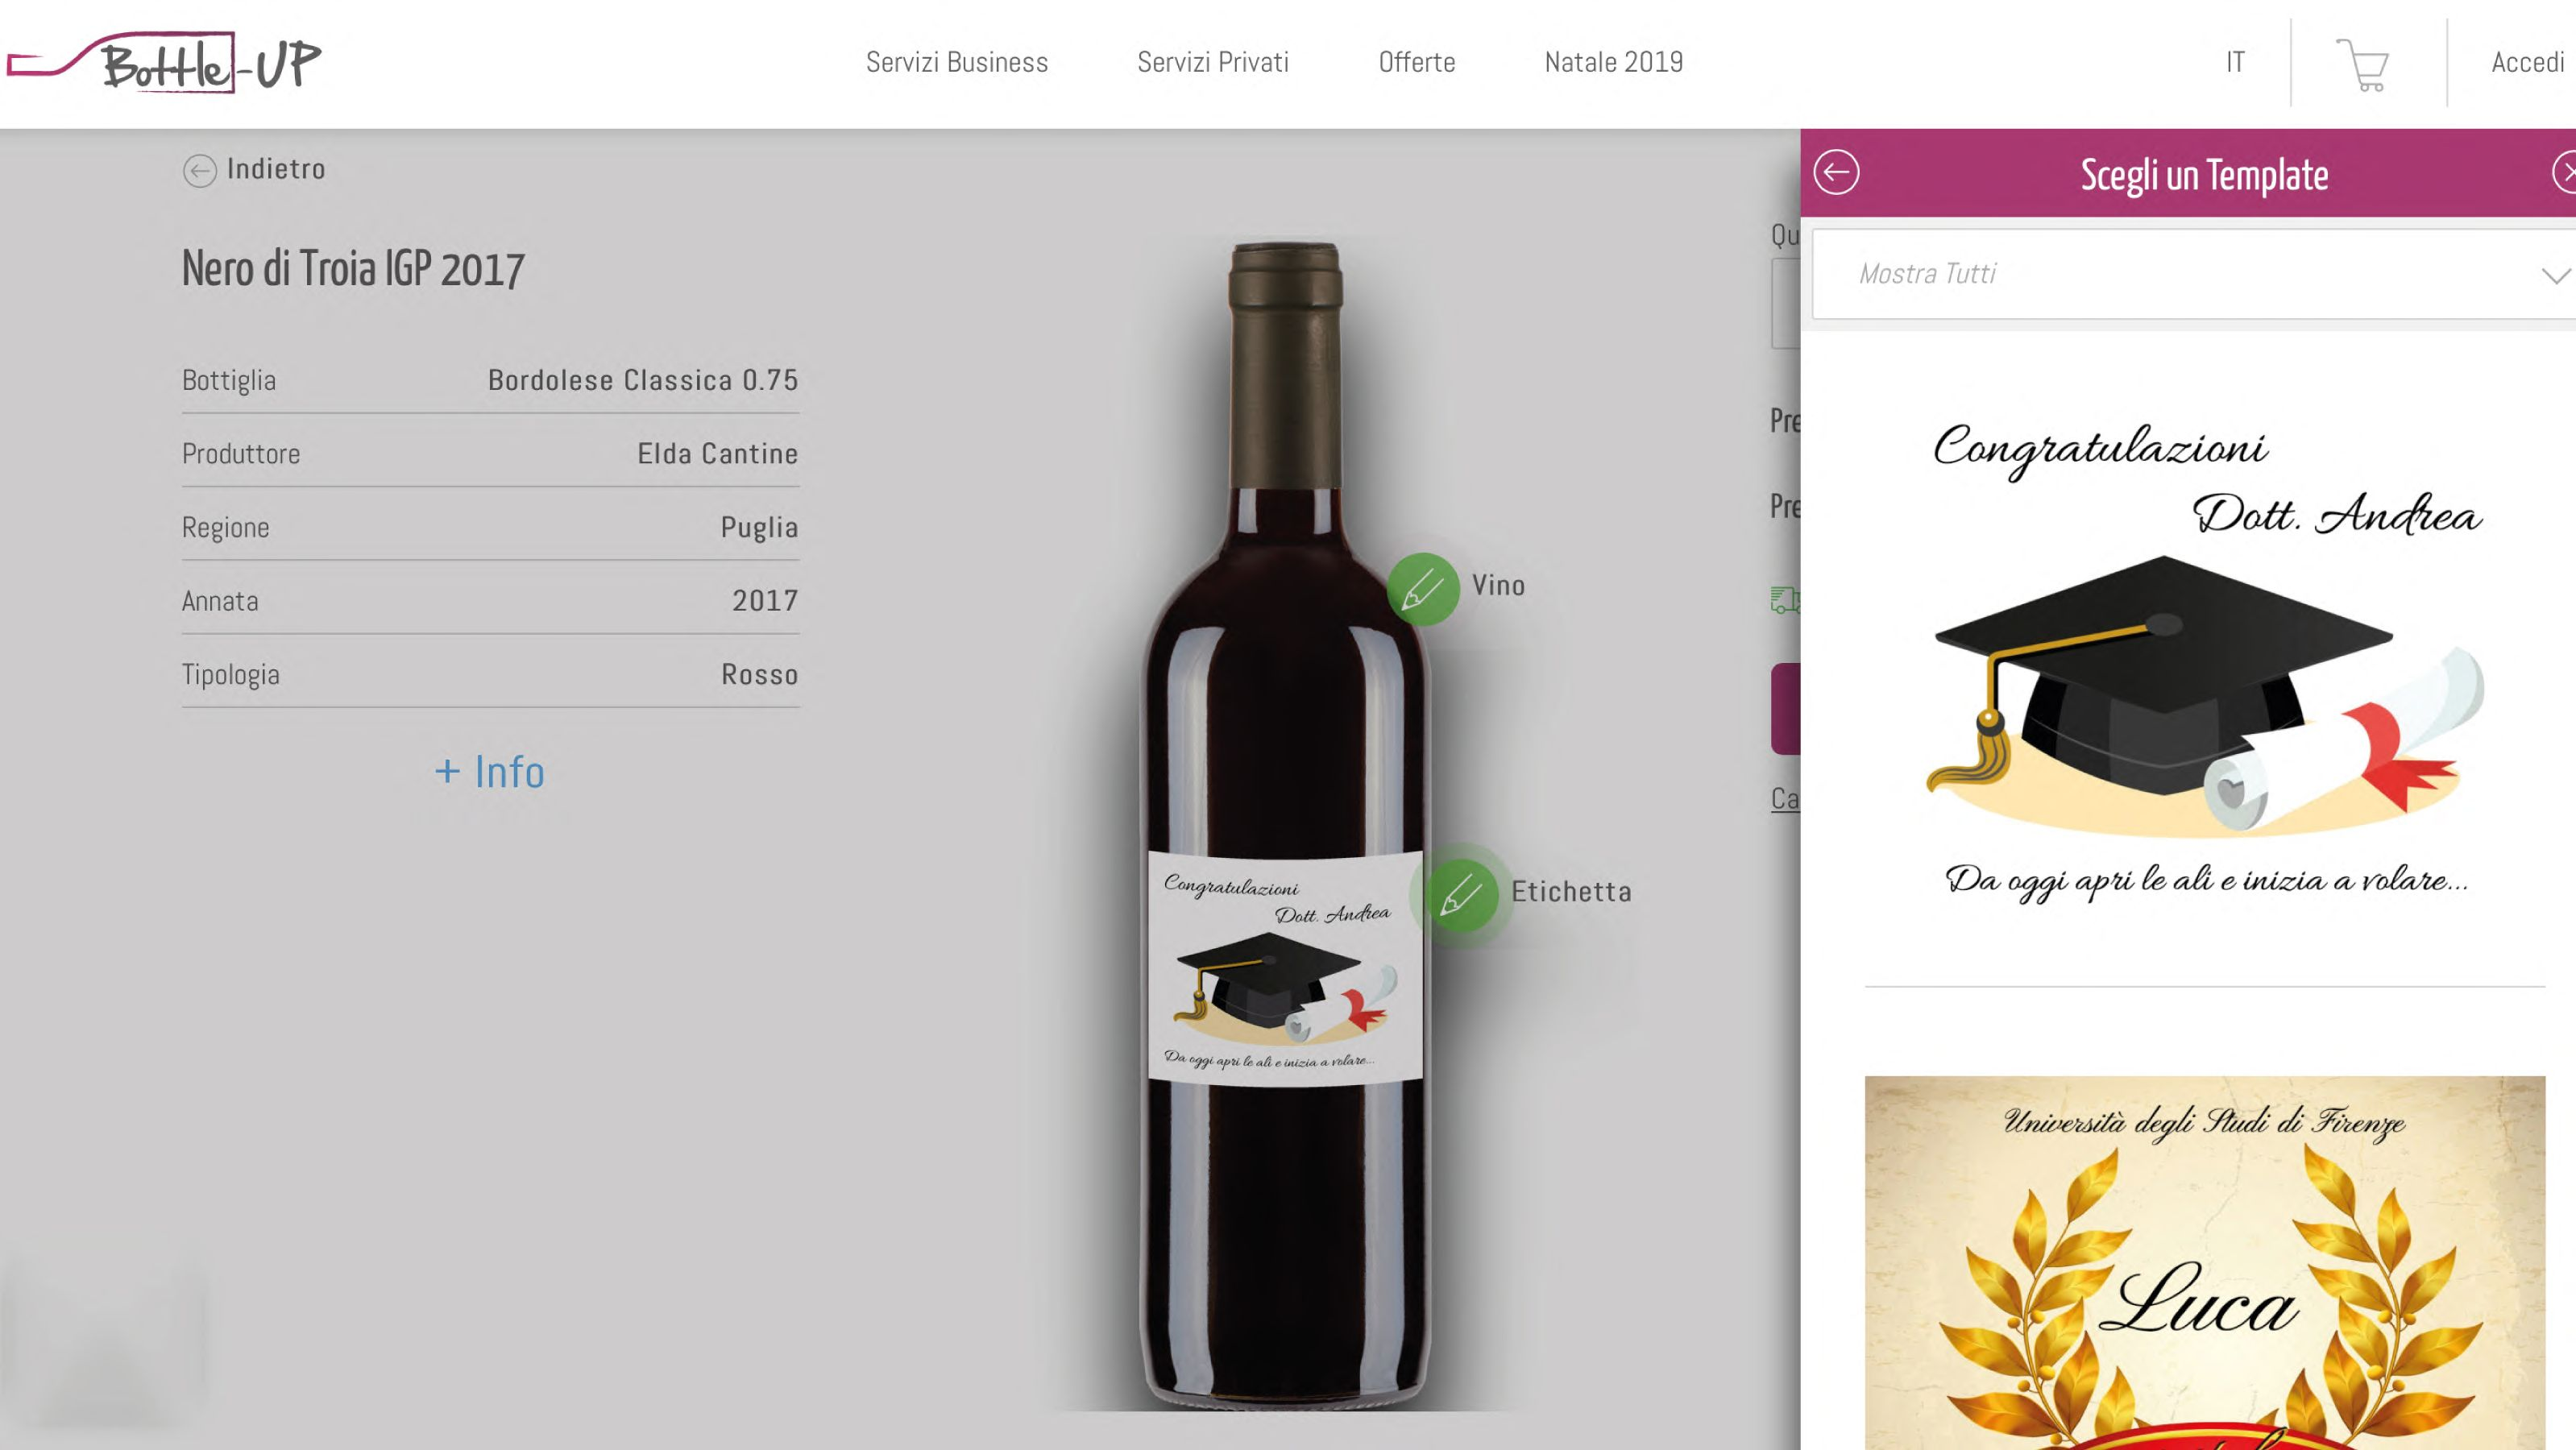 Template selection for graduation gift on the configurator for wine bottles